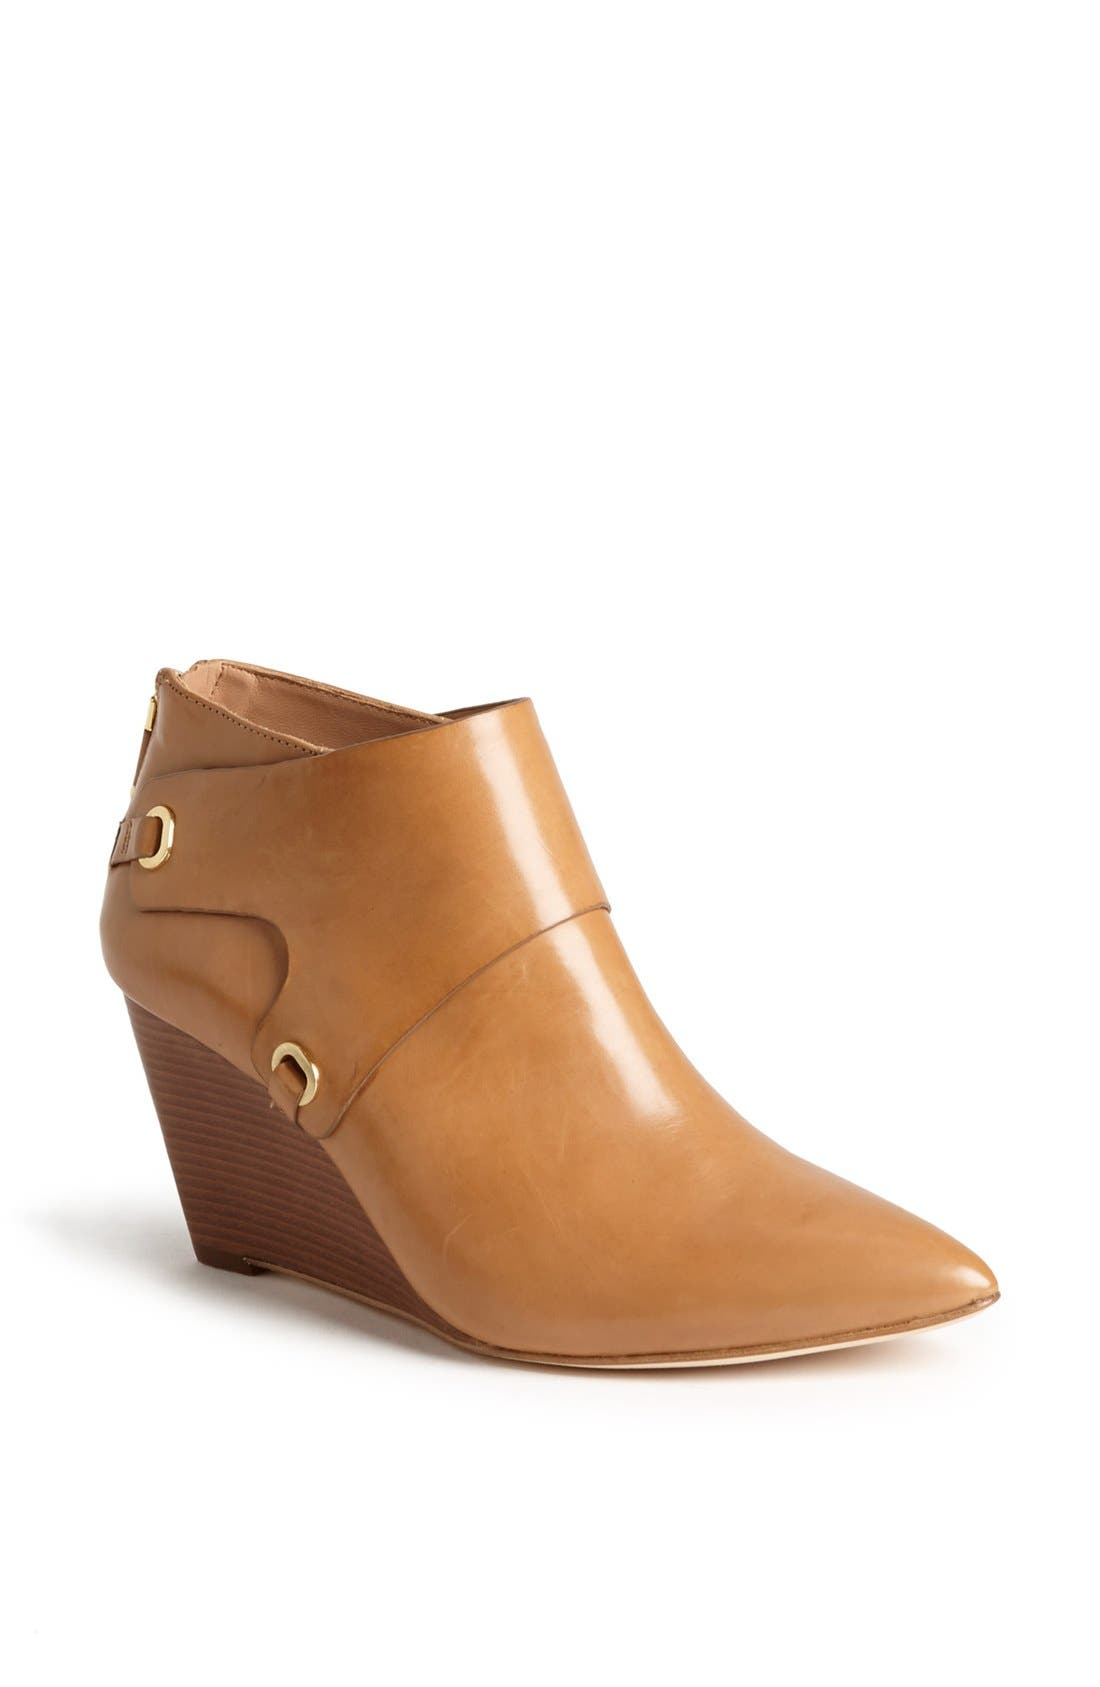 Alternate Image 1 Selected - VC Signature 'Mallorie' Leather Wedge Bootie